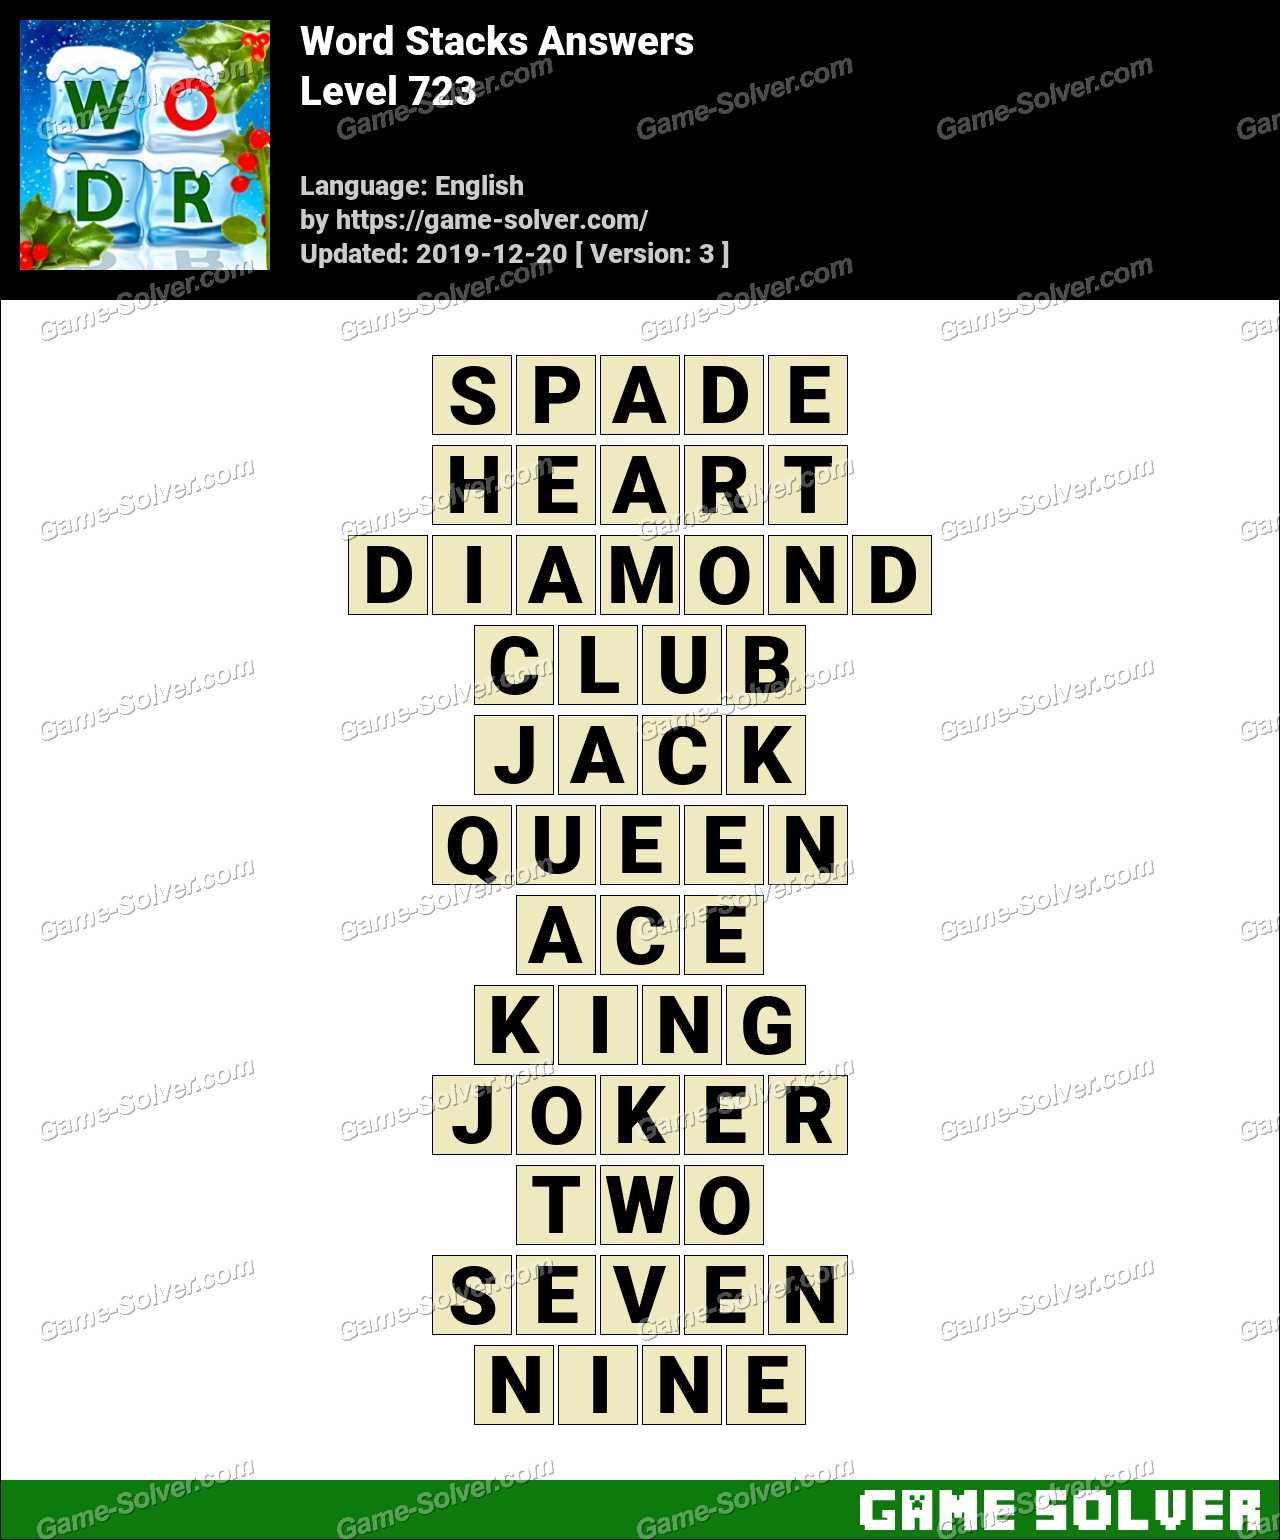 Word Stacks Level 723 Answers